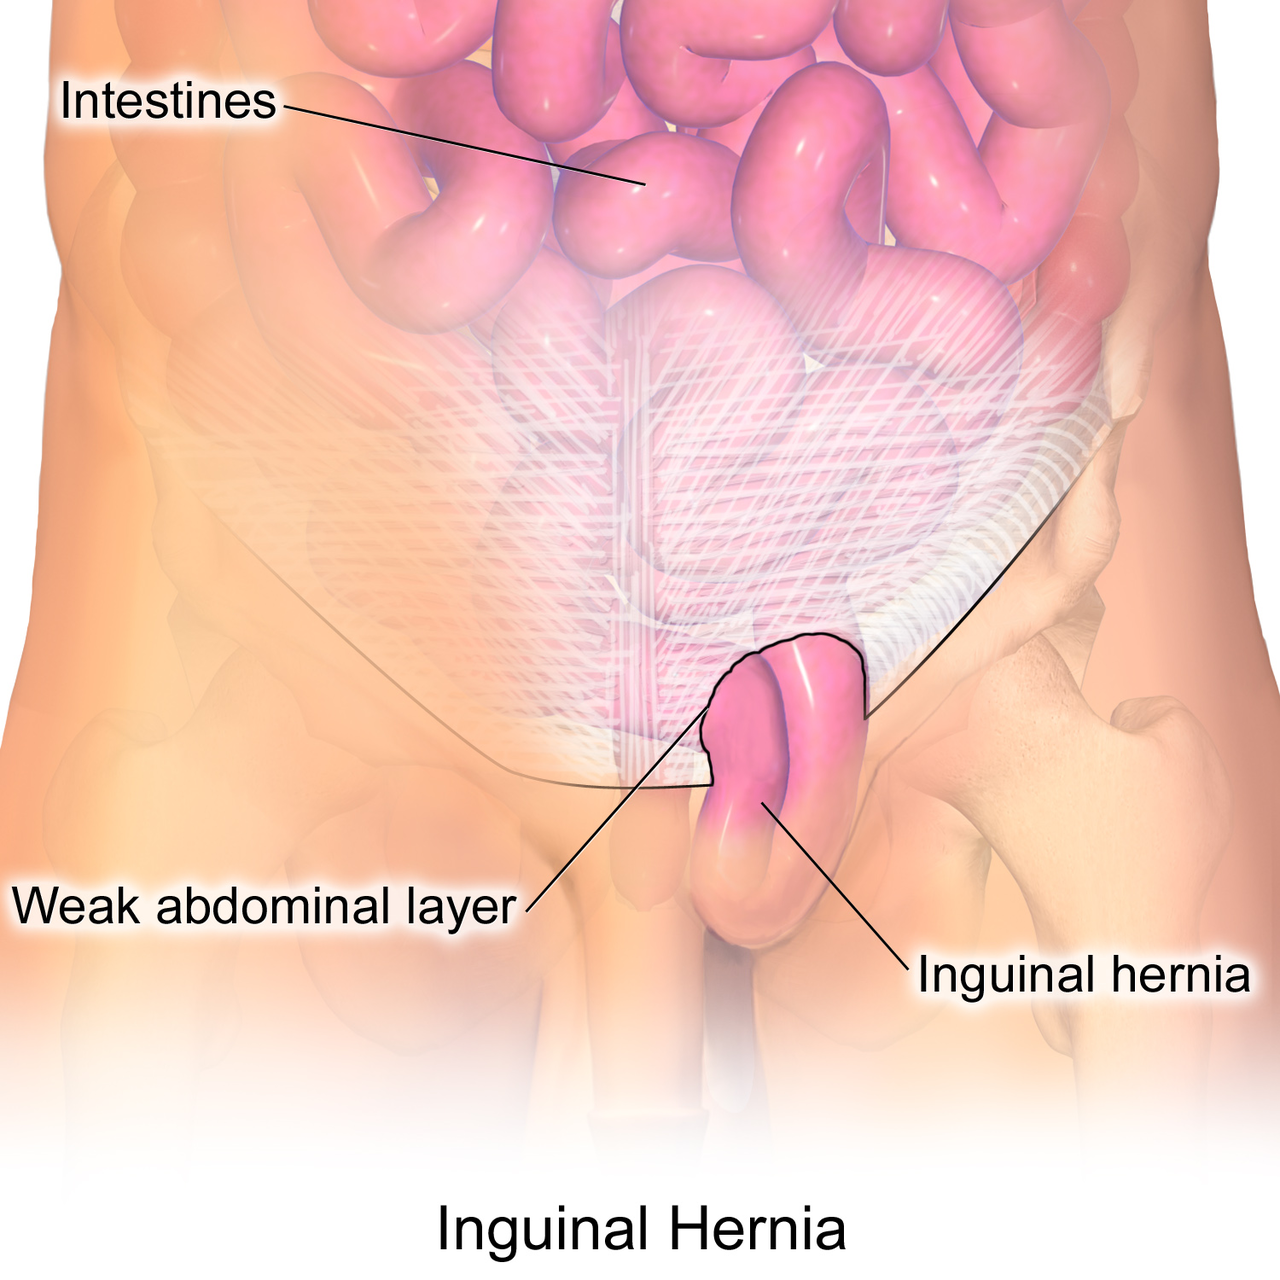 Department of Surgery - Inguinal Hernia